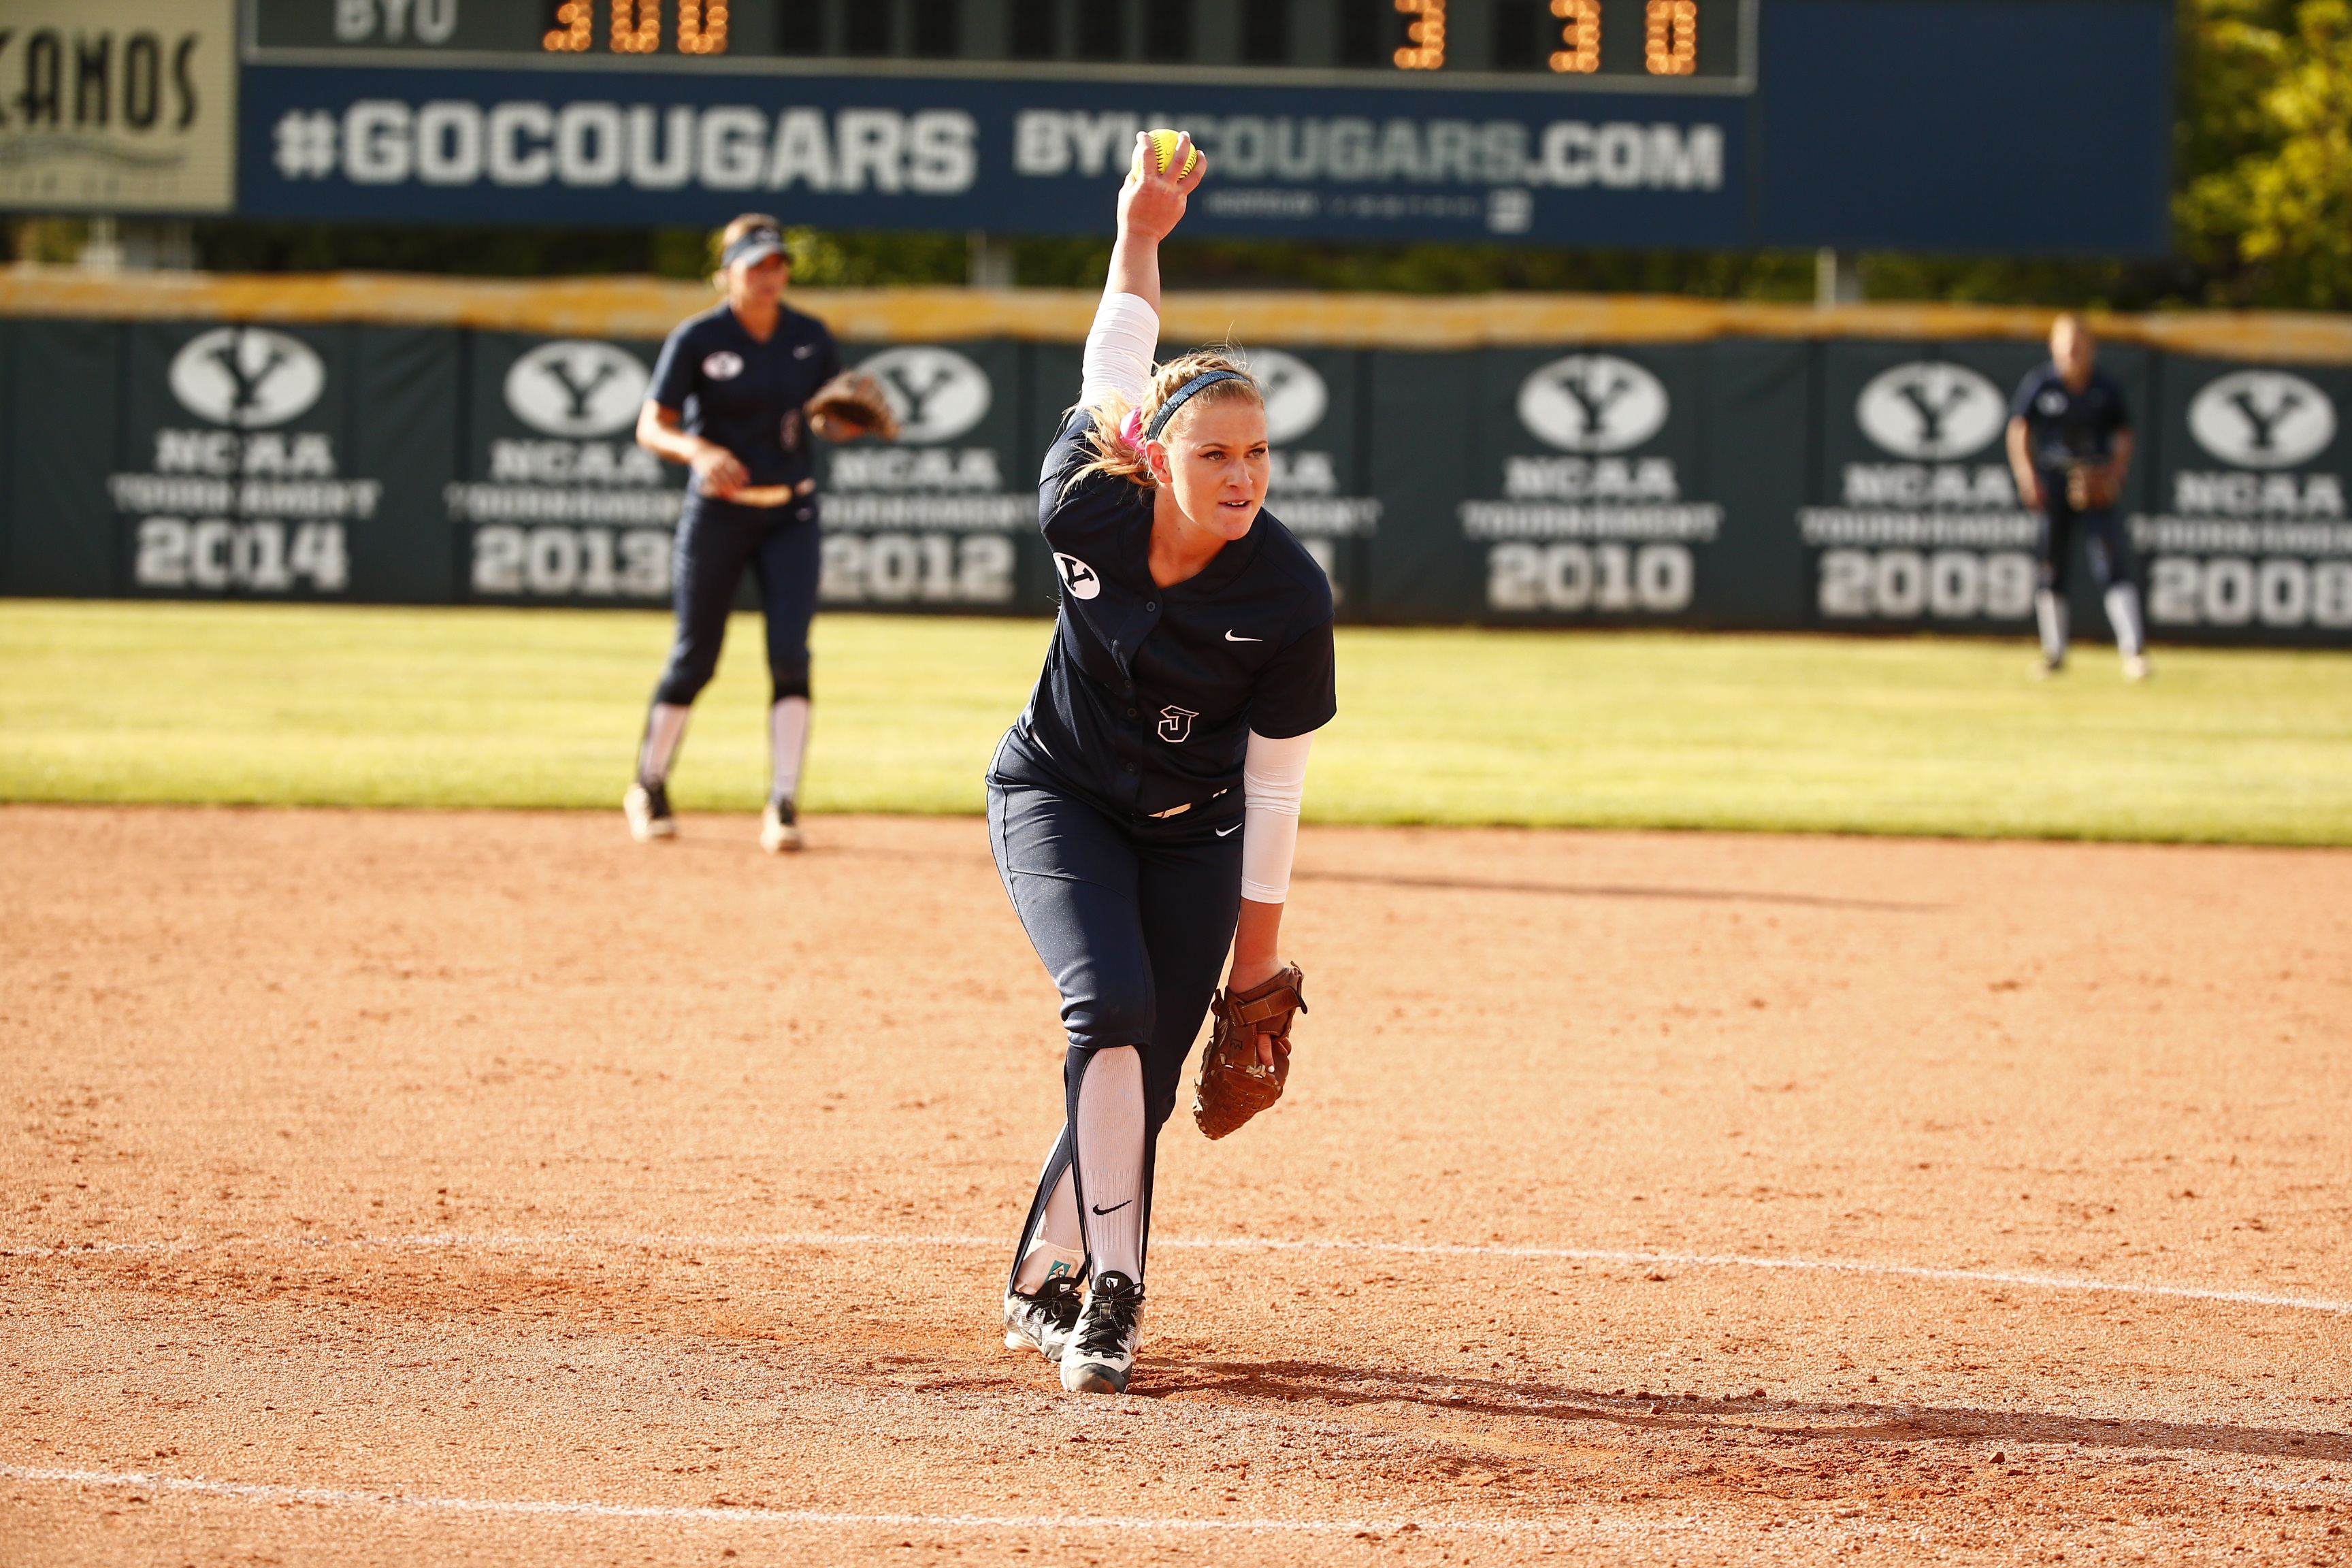 McKenna Bull pitches against UVU earlier in the season.  BYU was eliminated from Regionals Friday night. (Jaren Wilkey)